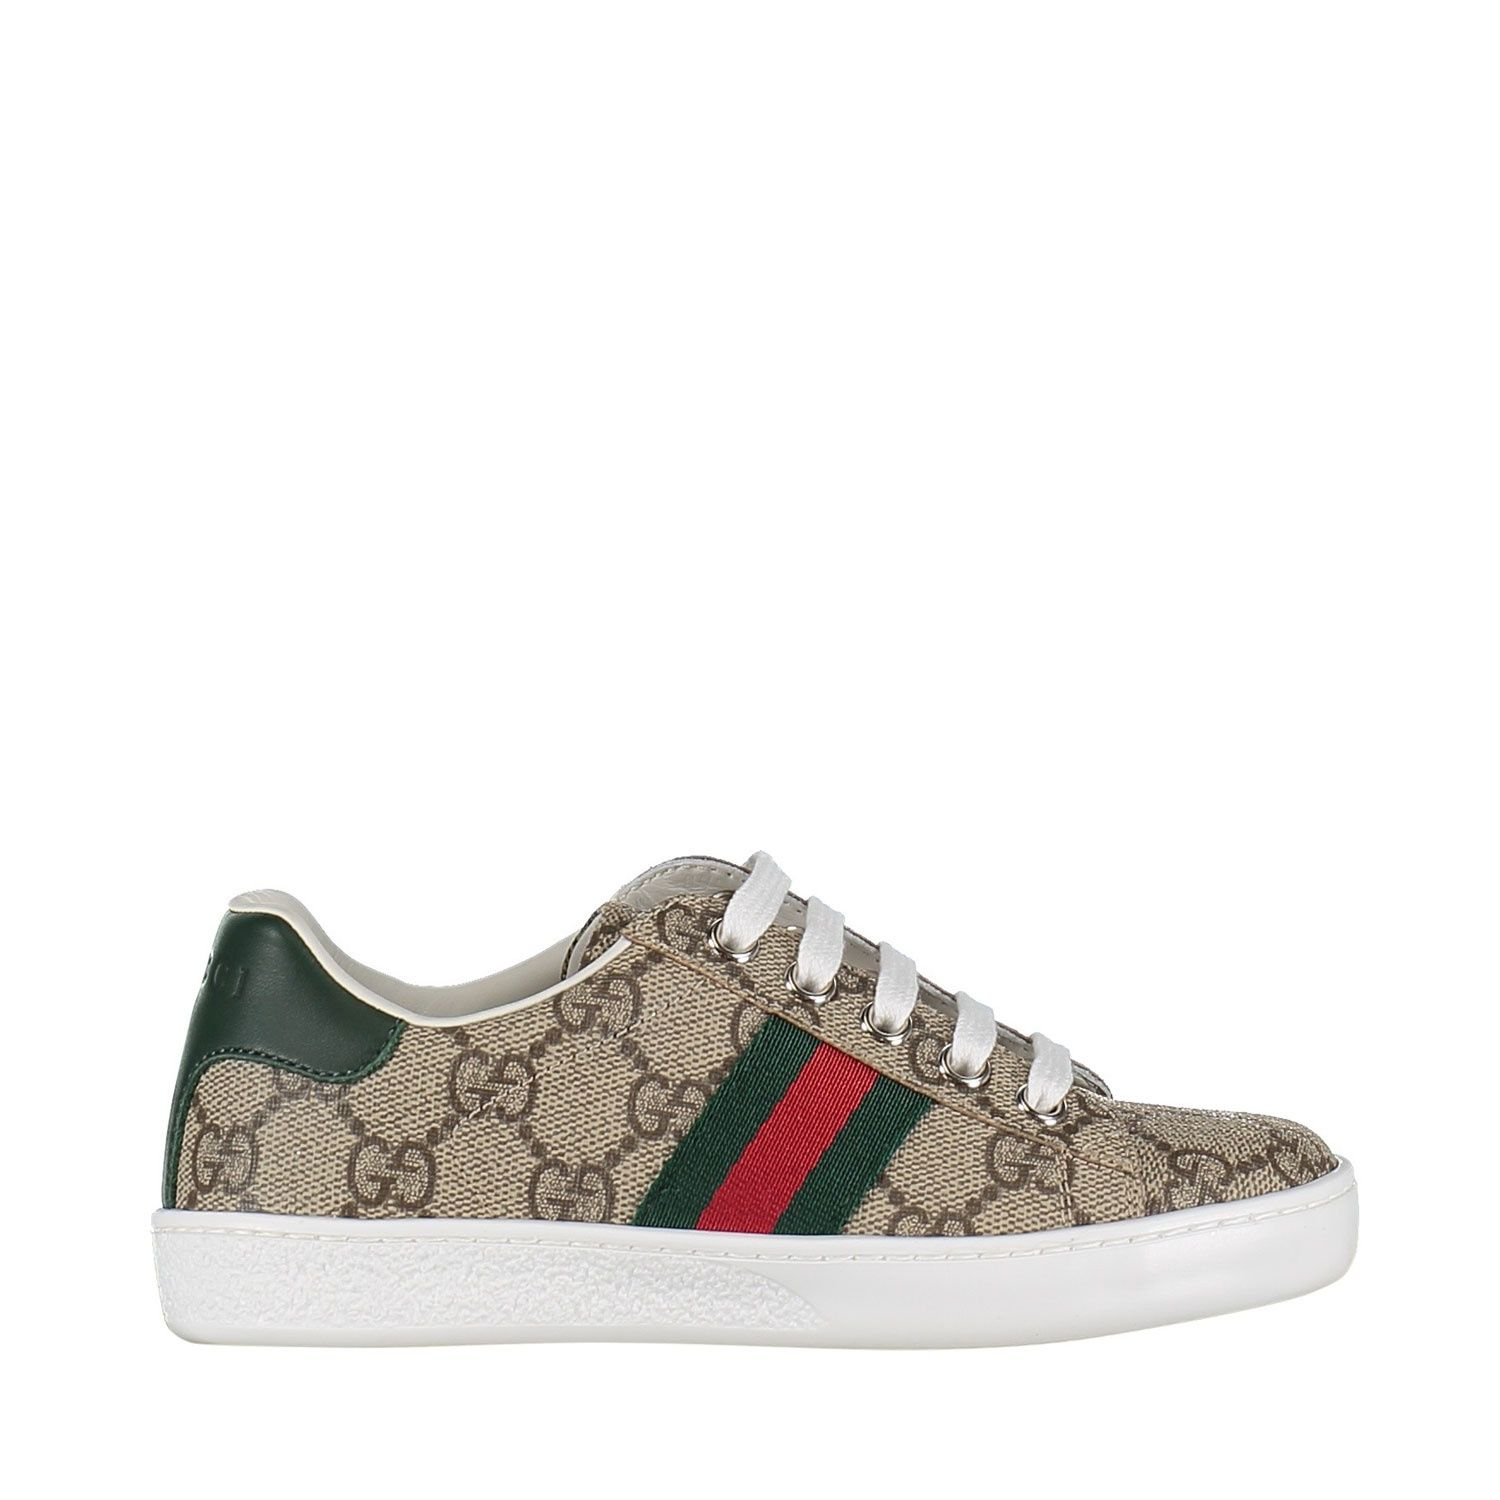 Picture of Gucci 433149 9C210 kids sneakers beige